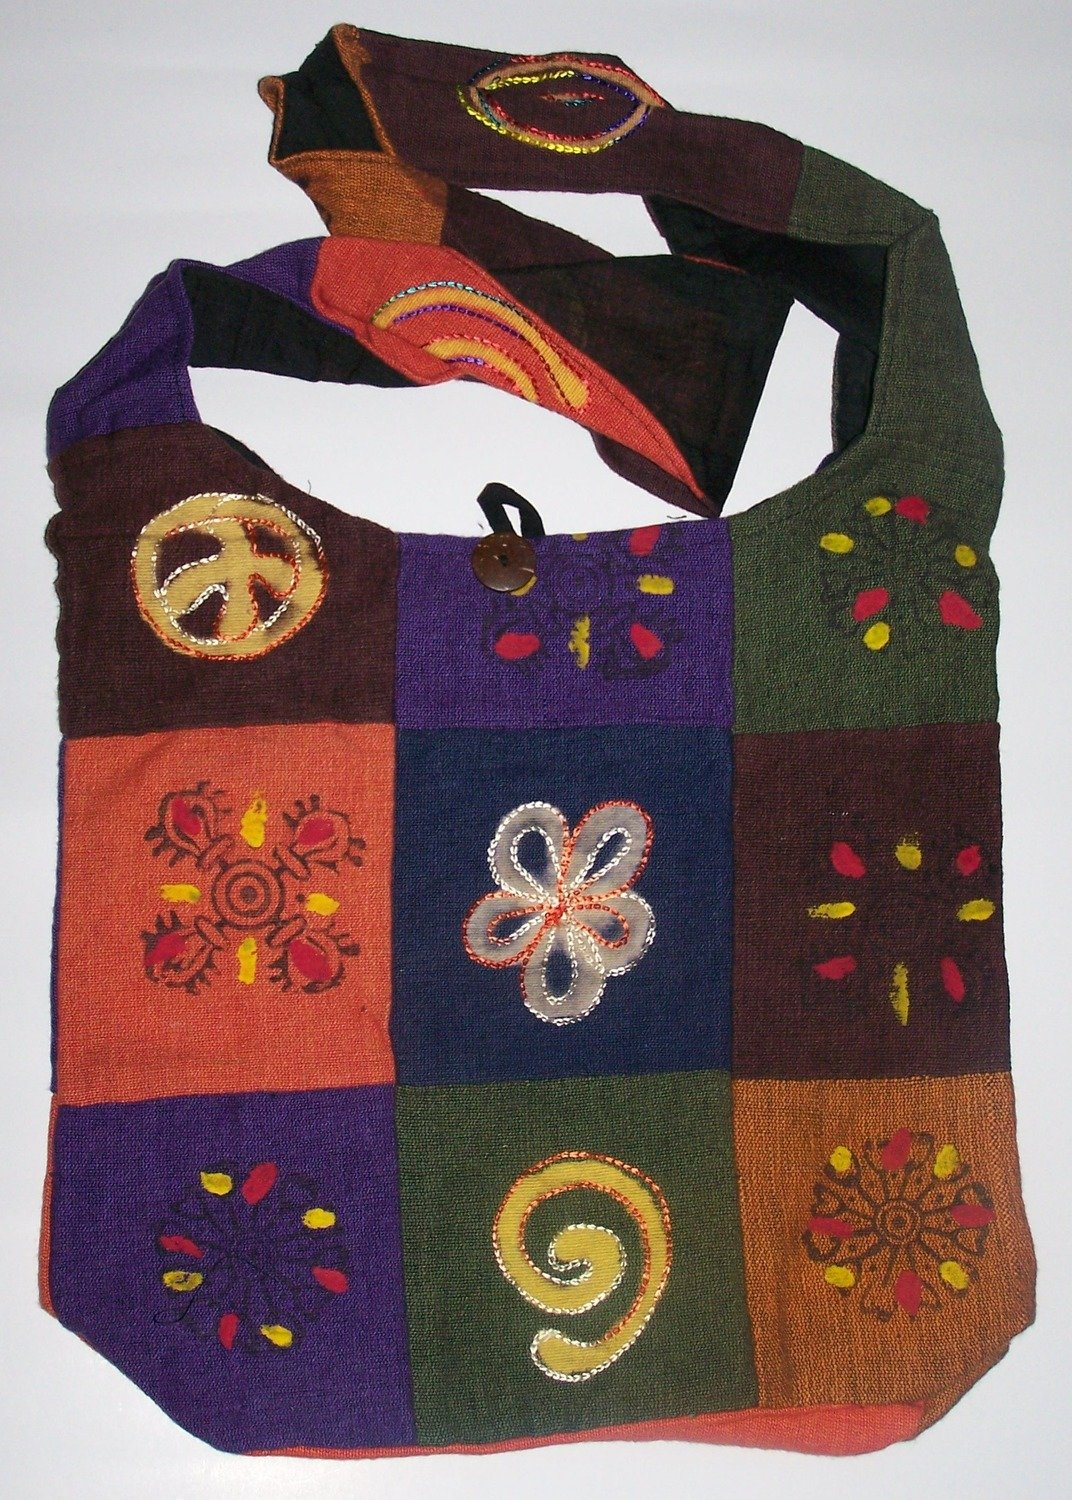 Cotton Embroidered Shoulder Bags - Clearance